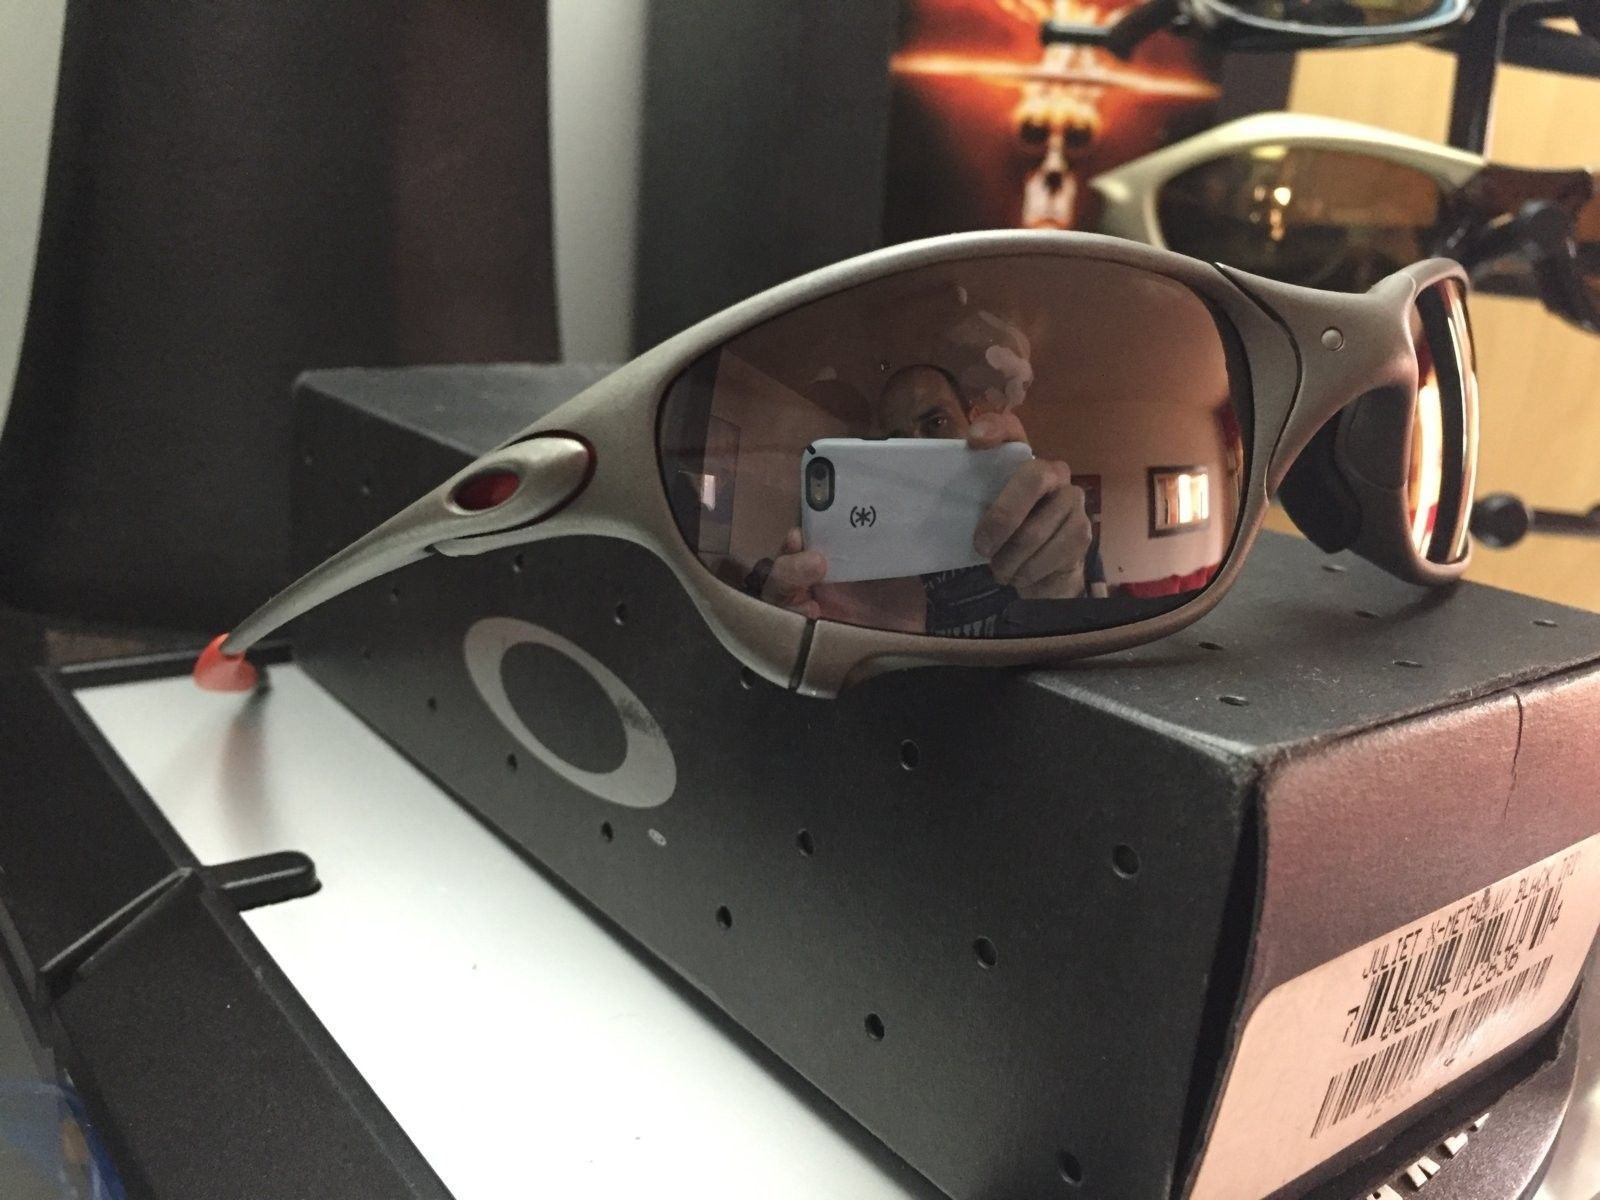 Oakley Juliet Ducati Price For Sale In Malaysia   City of Kenmore ... f0c4f69195